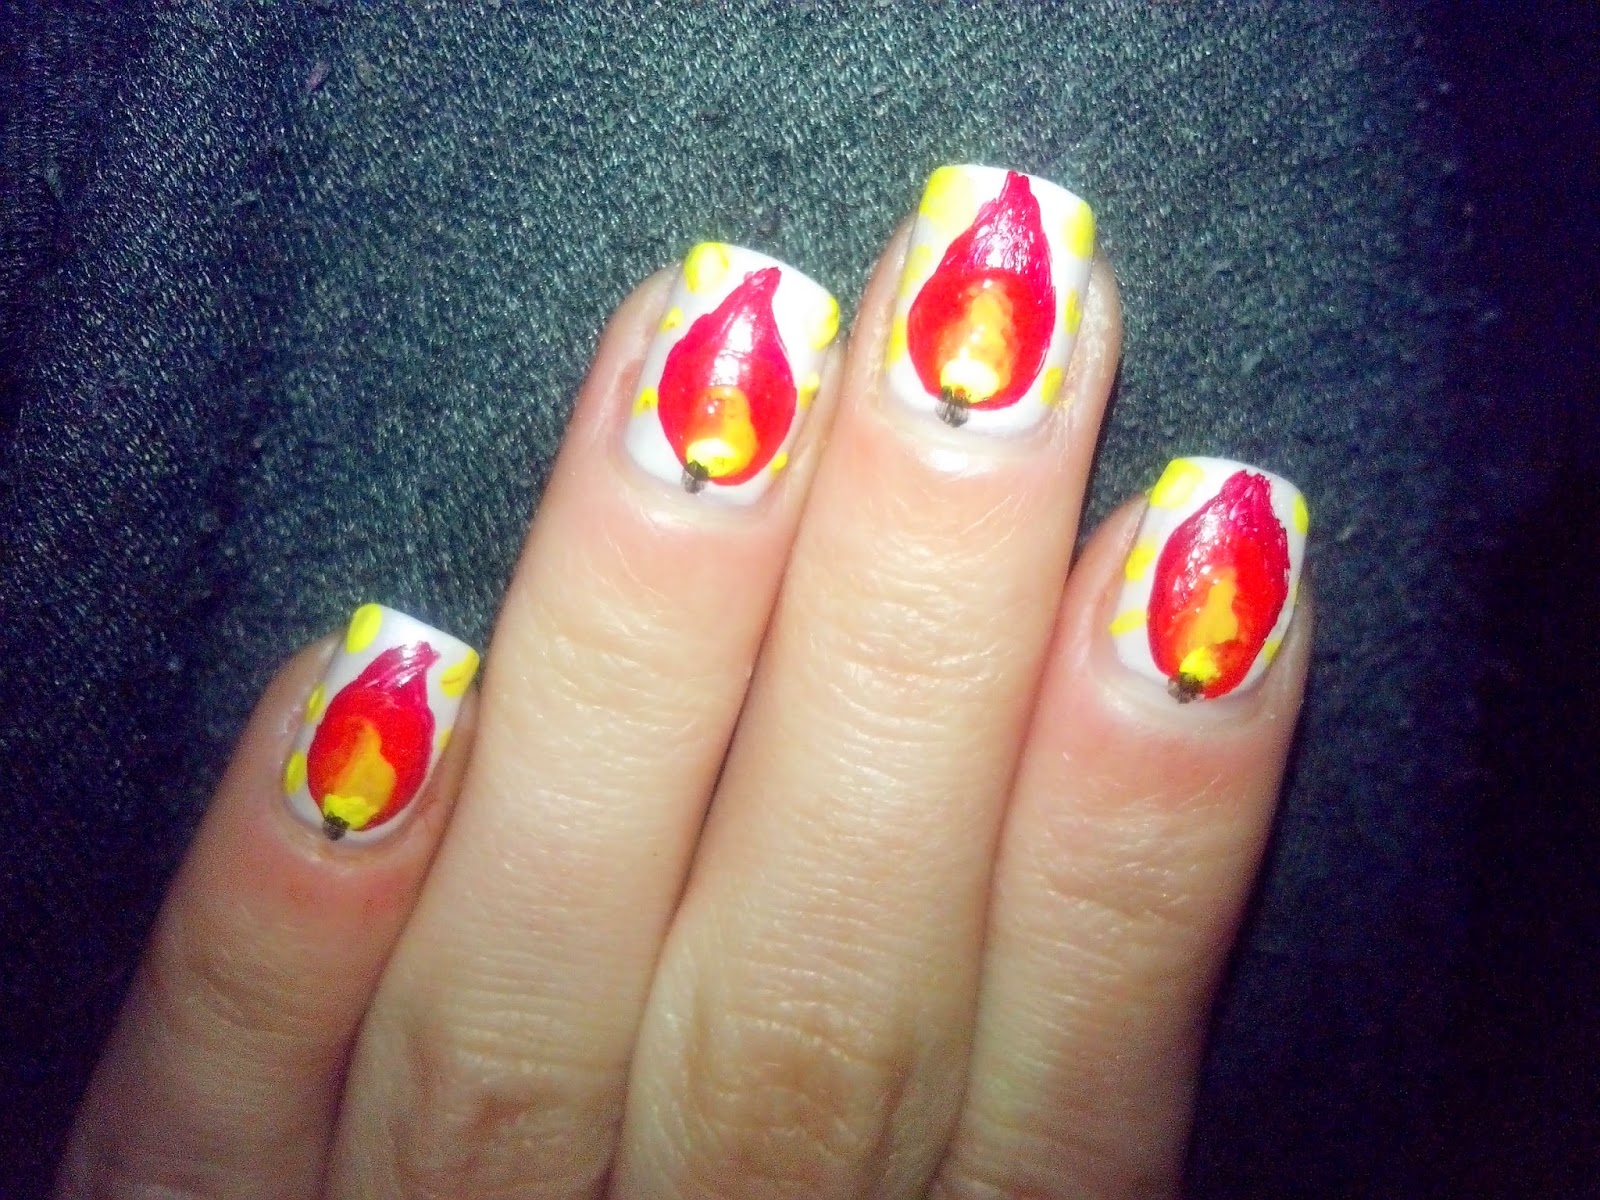 winter-nail-art-challenge-day-one-christmas-lights-candles